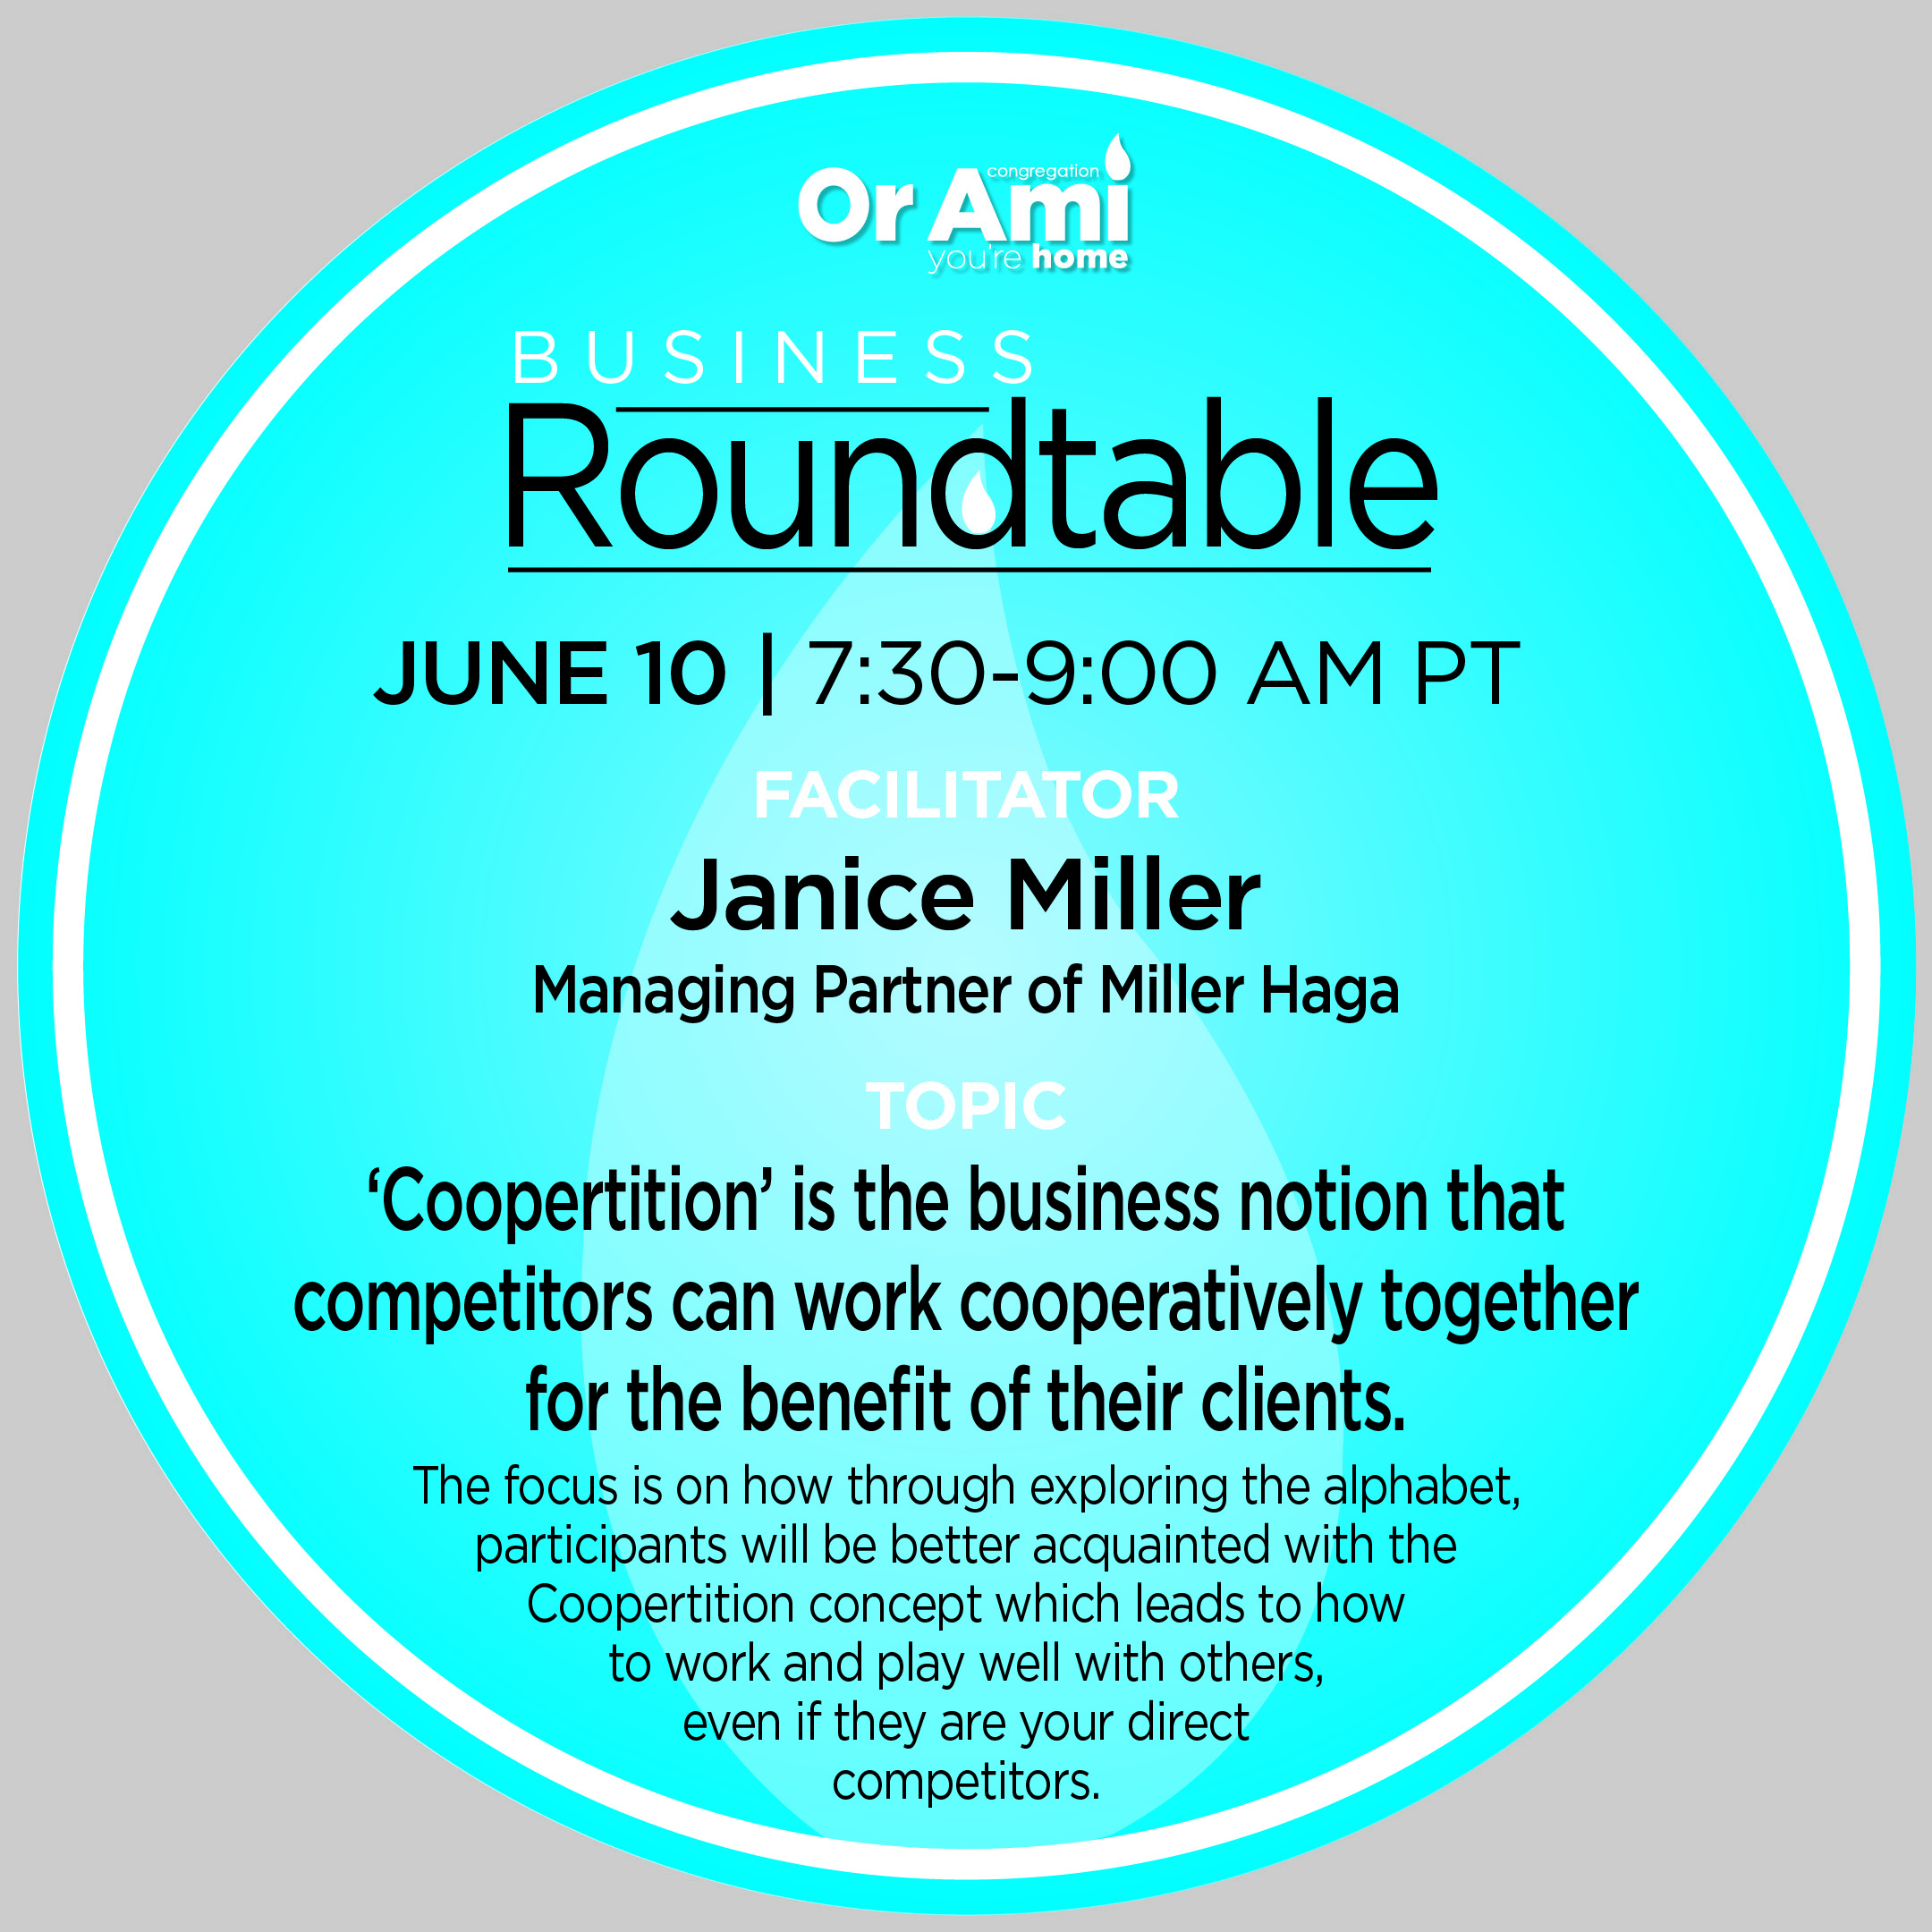 _2 Or Ami Business Roundtable June 10